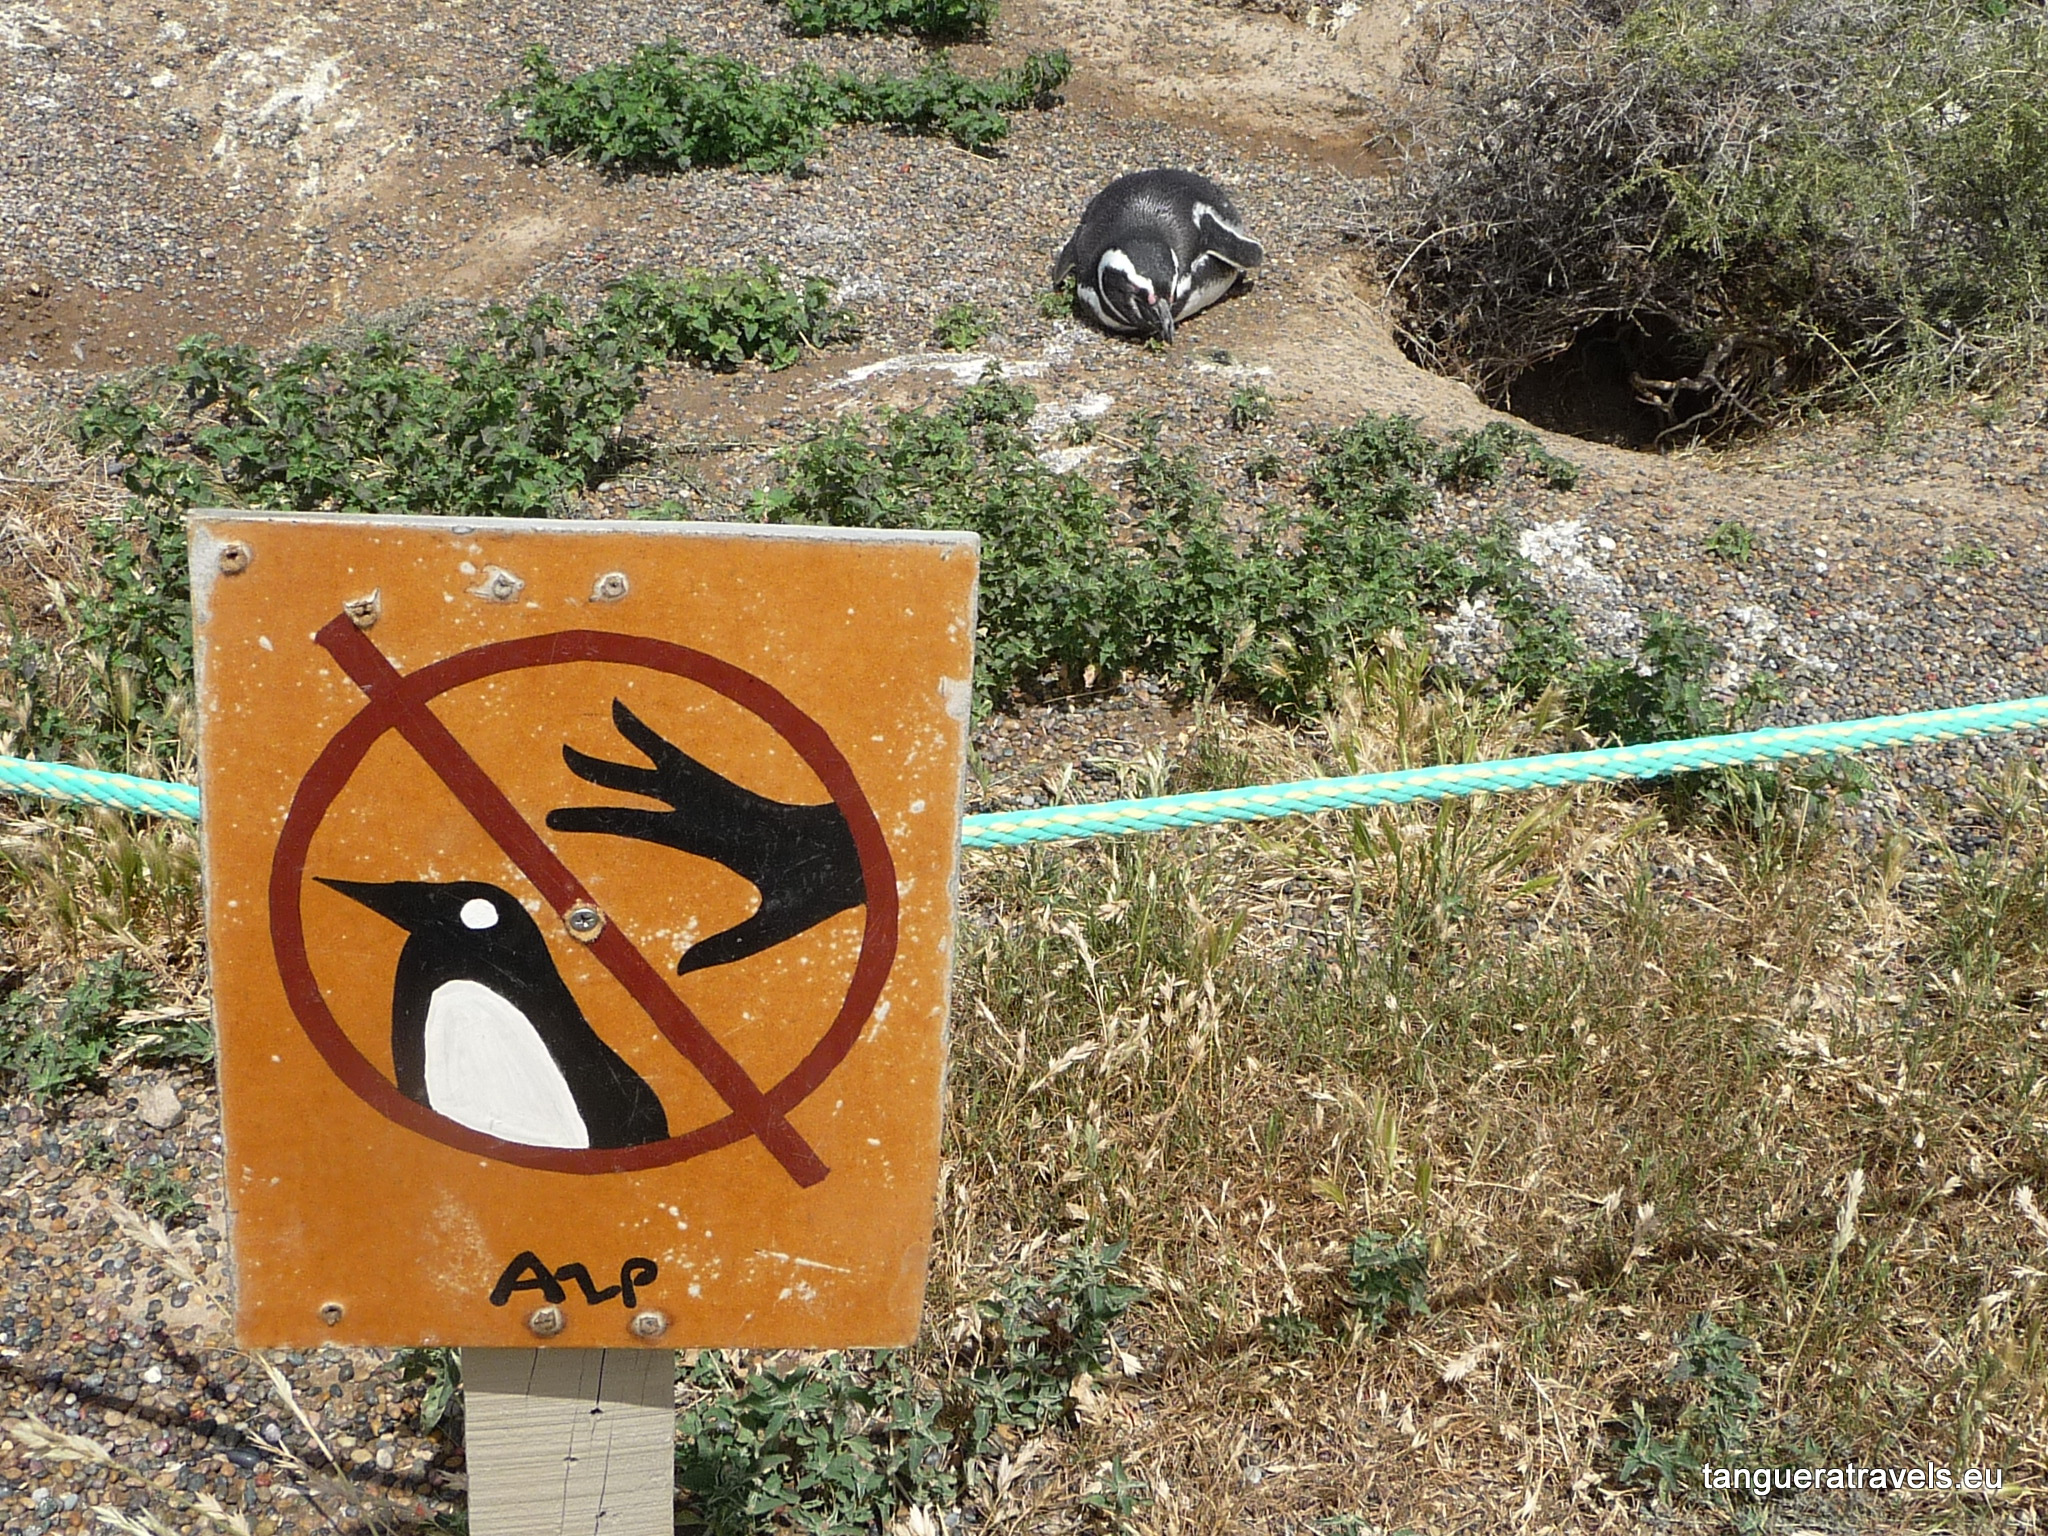 hands off the penguins